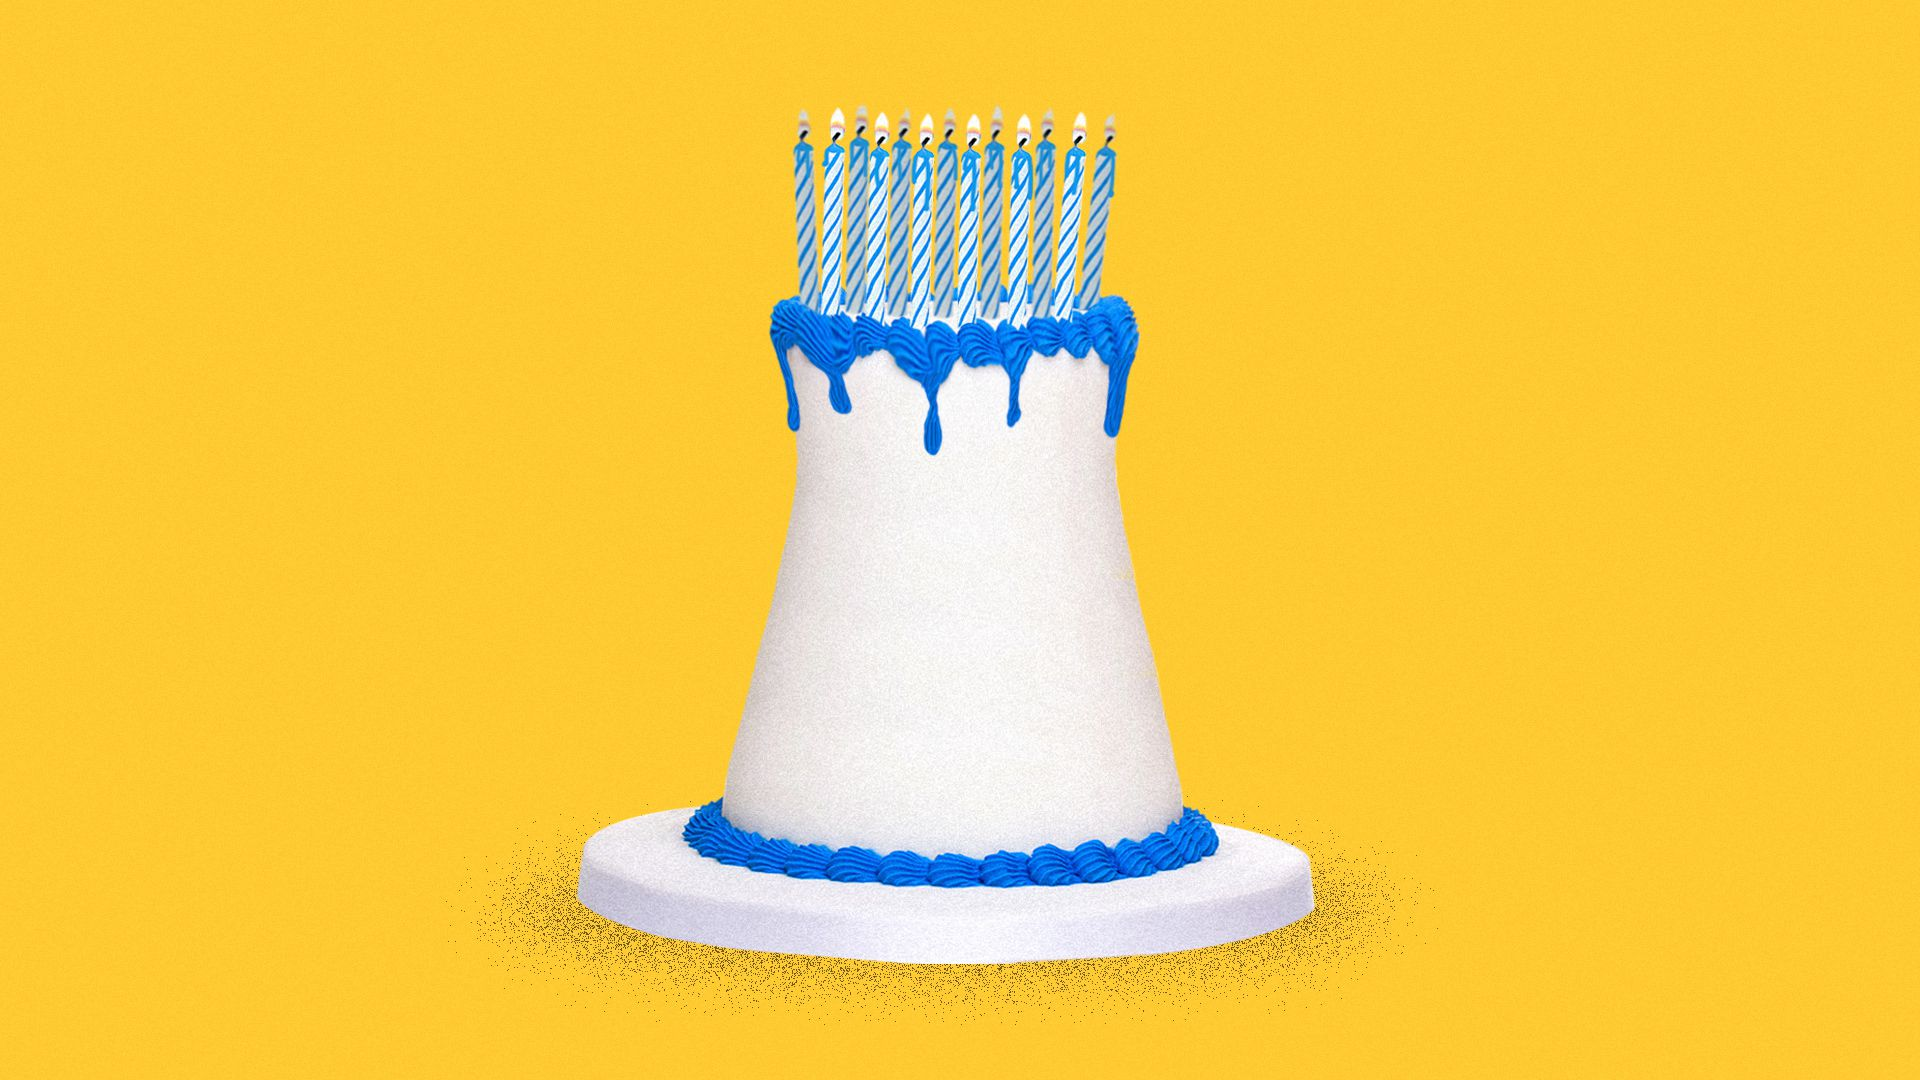 Illustration of a melting birthday cake in the shape of a nuclear tower with too many candles on top